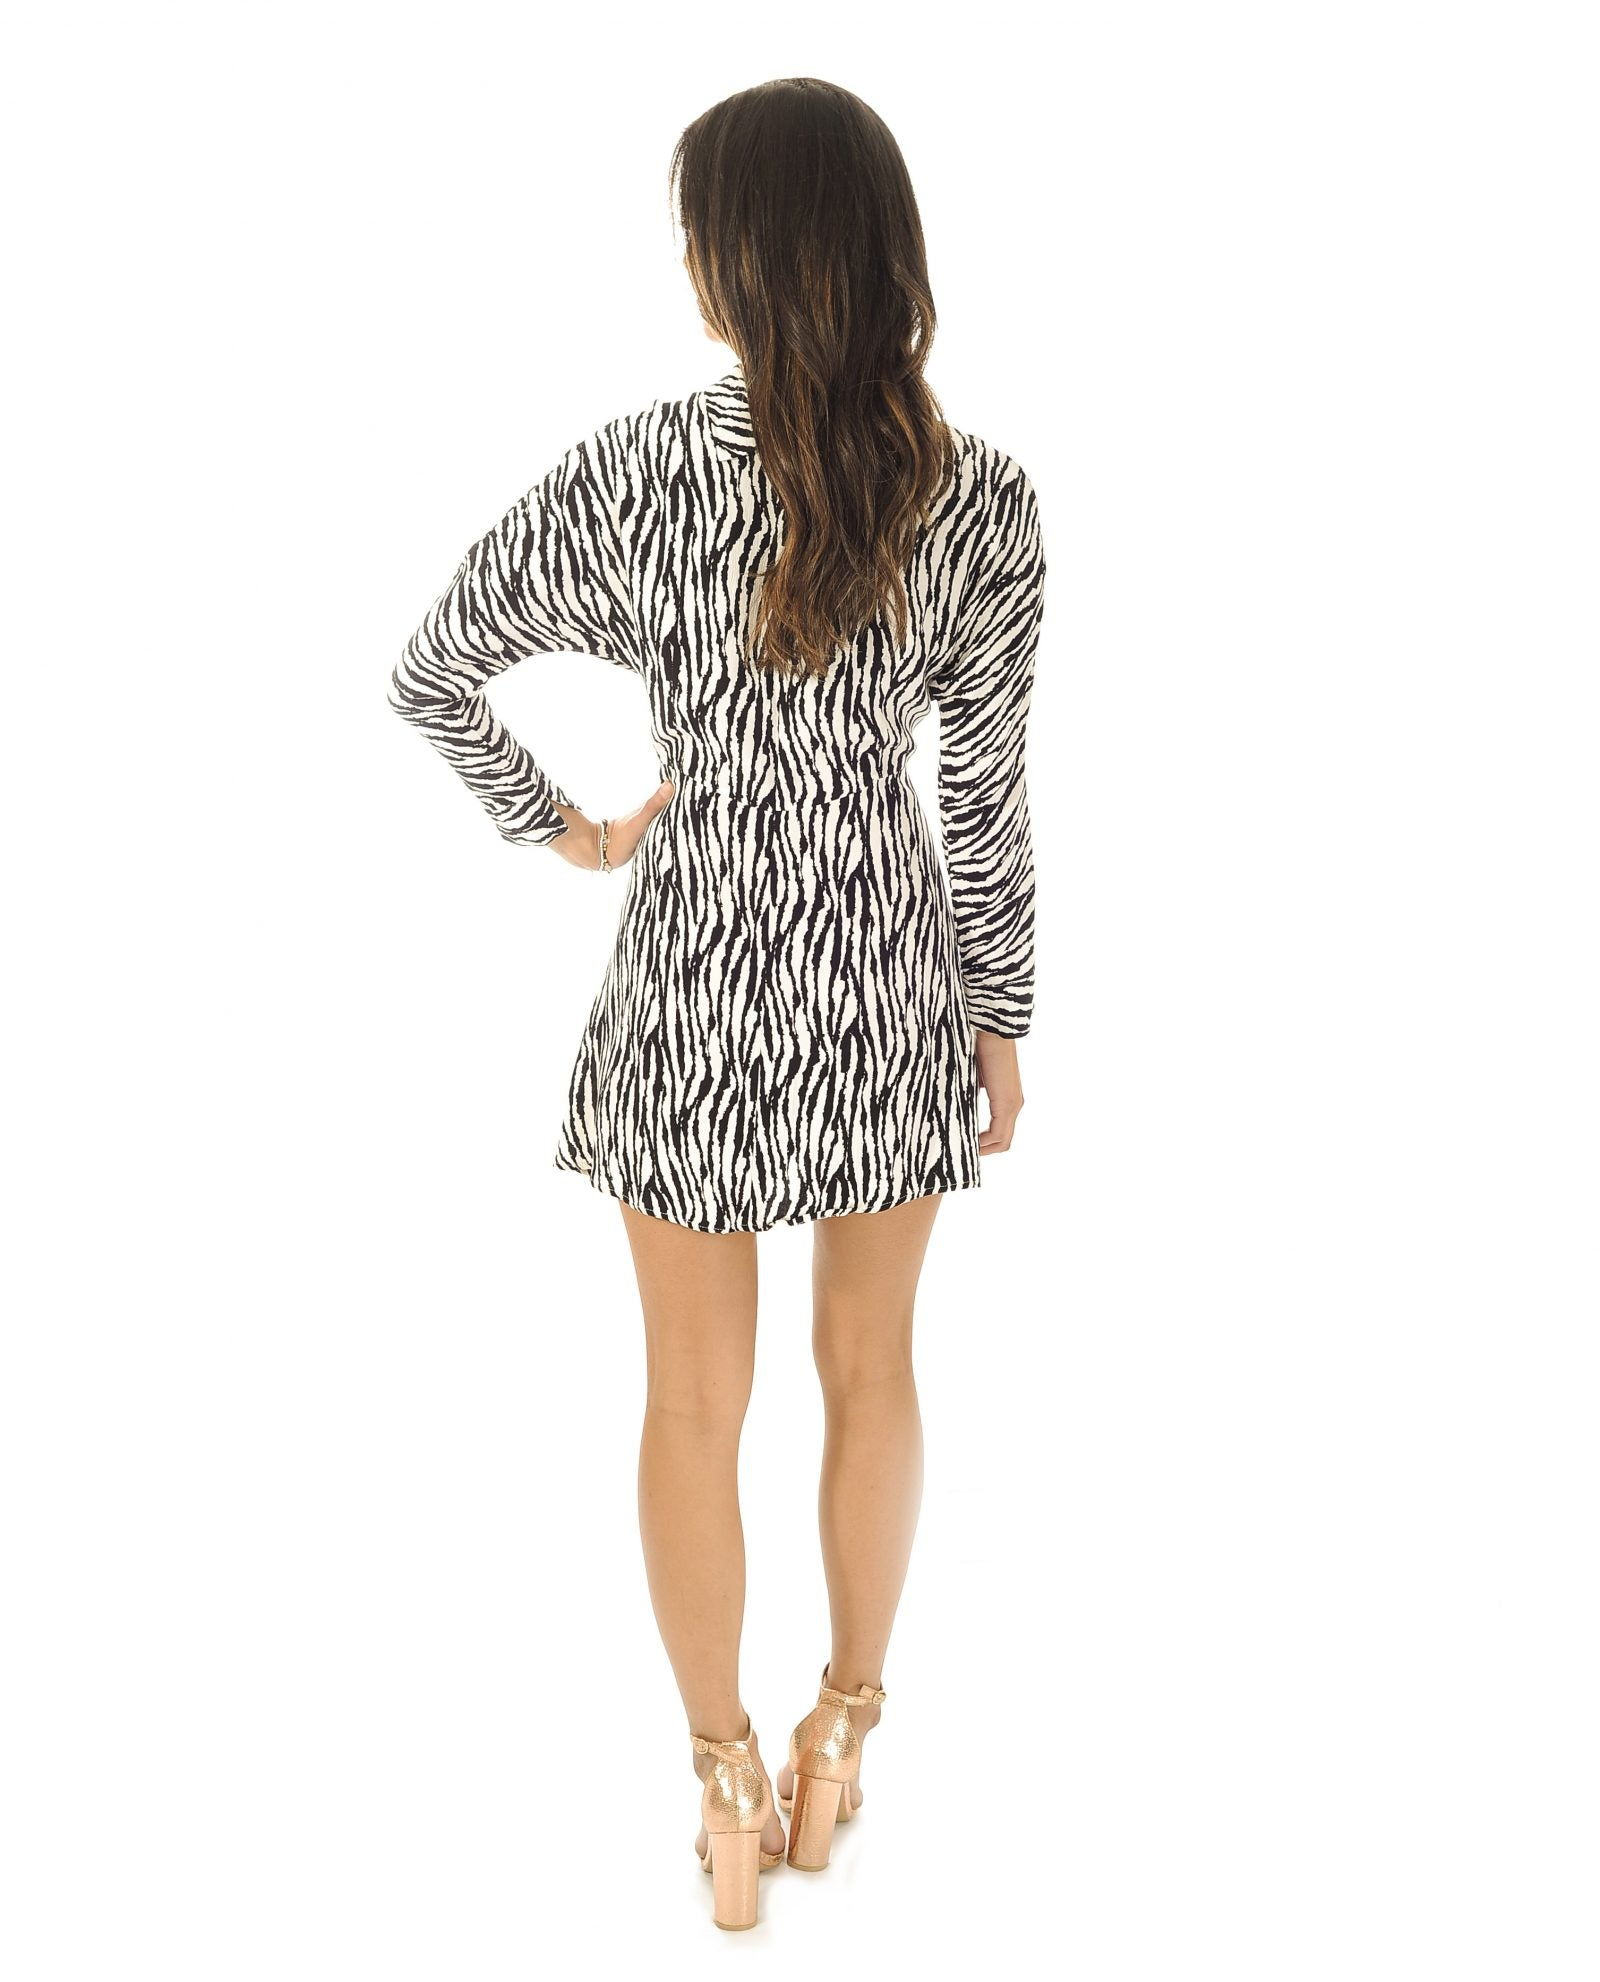 TOPSHOP ZEBRA STRIPE SKATER DRESS_AAA0857